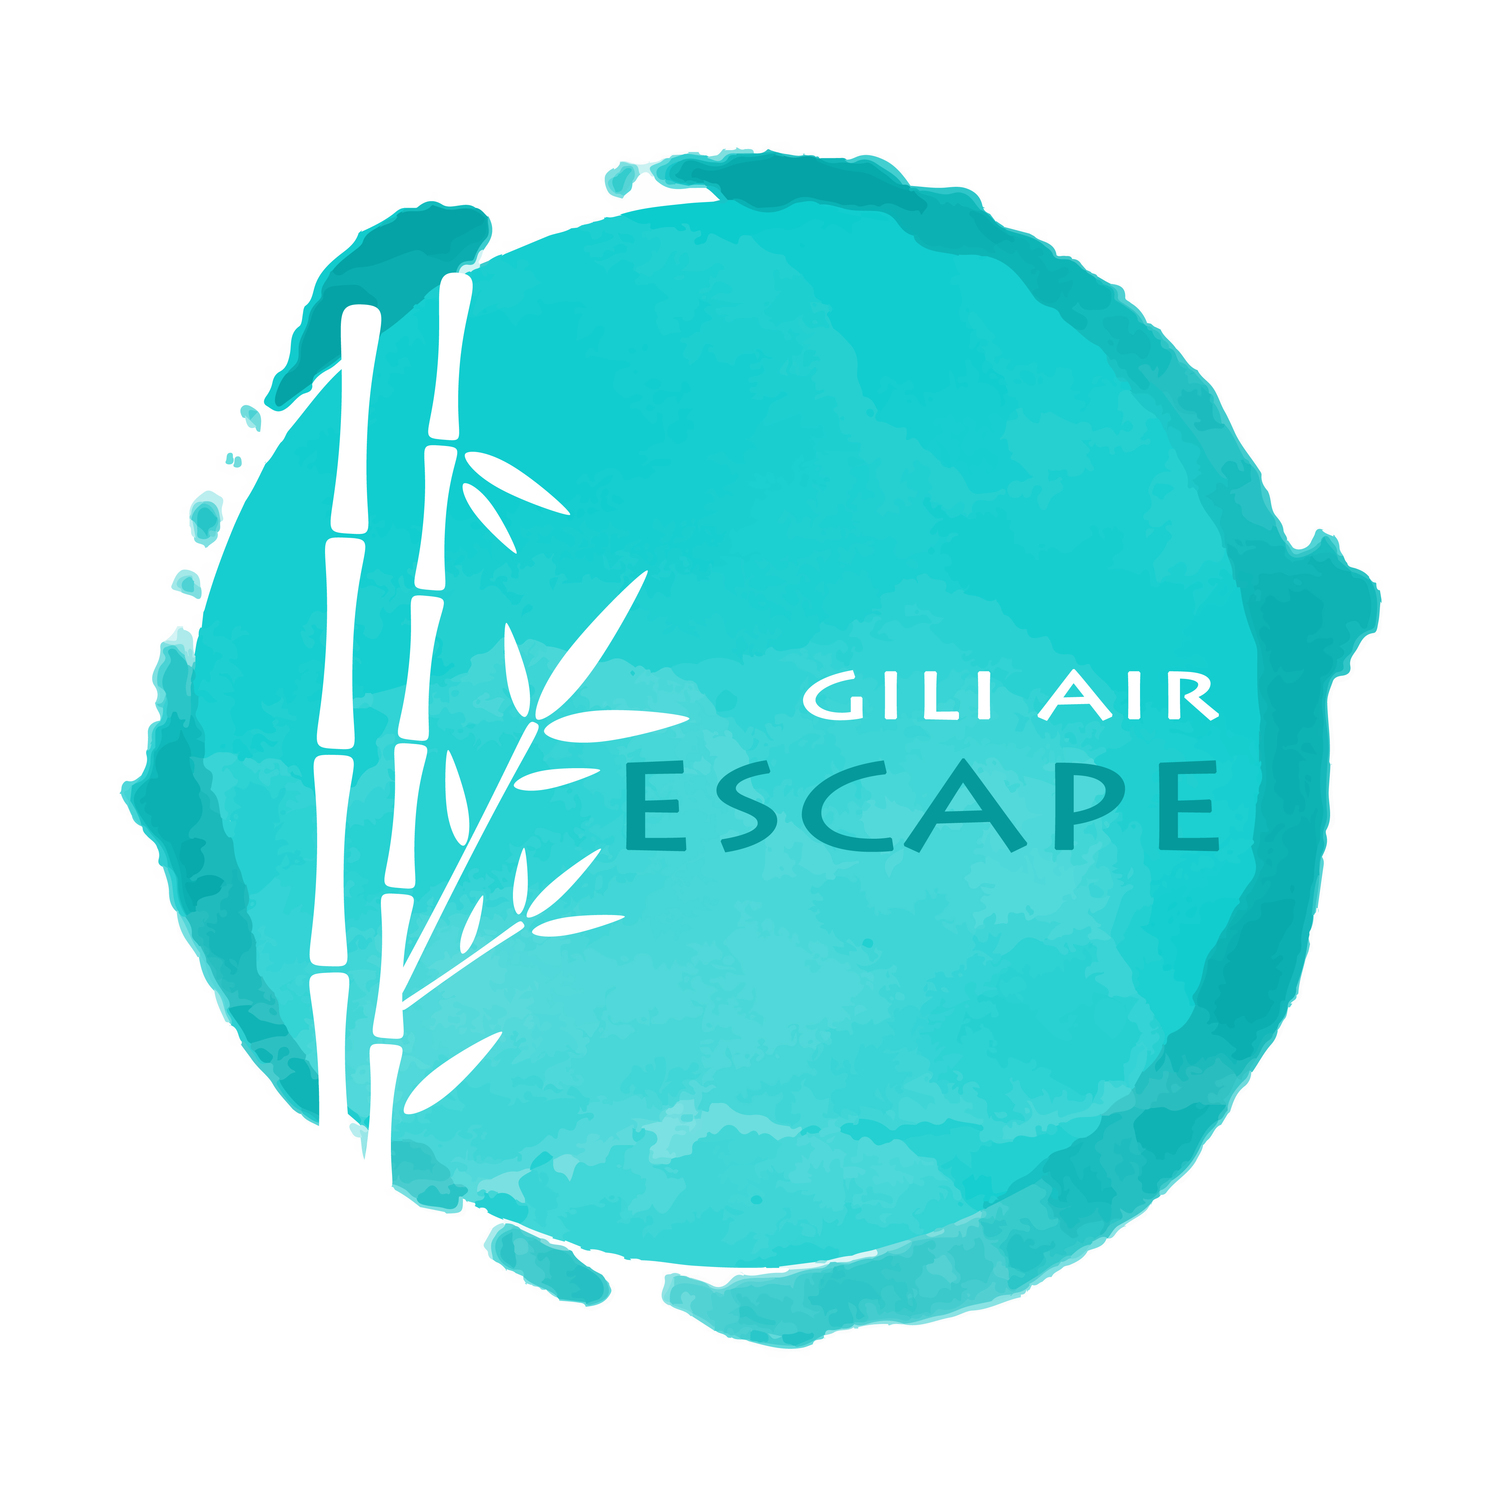 Gili Air Escape